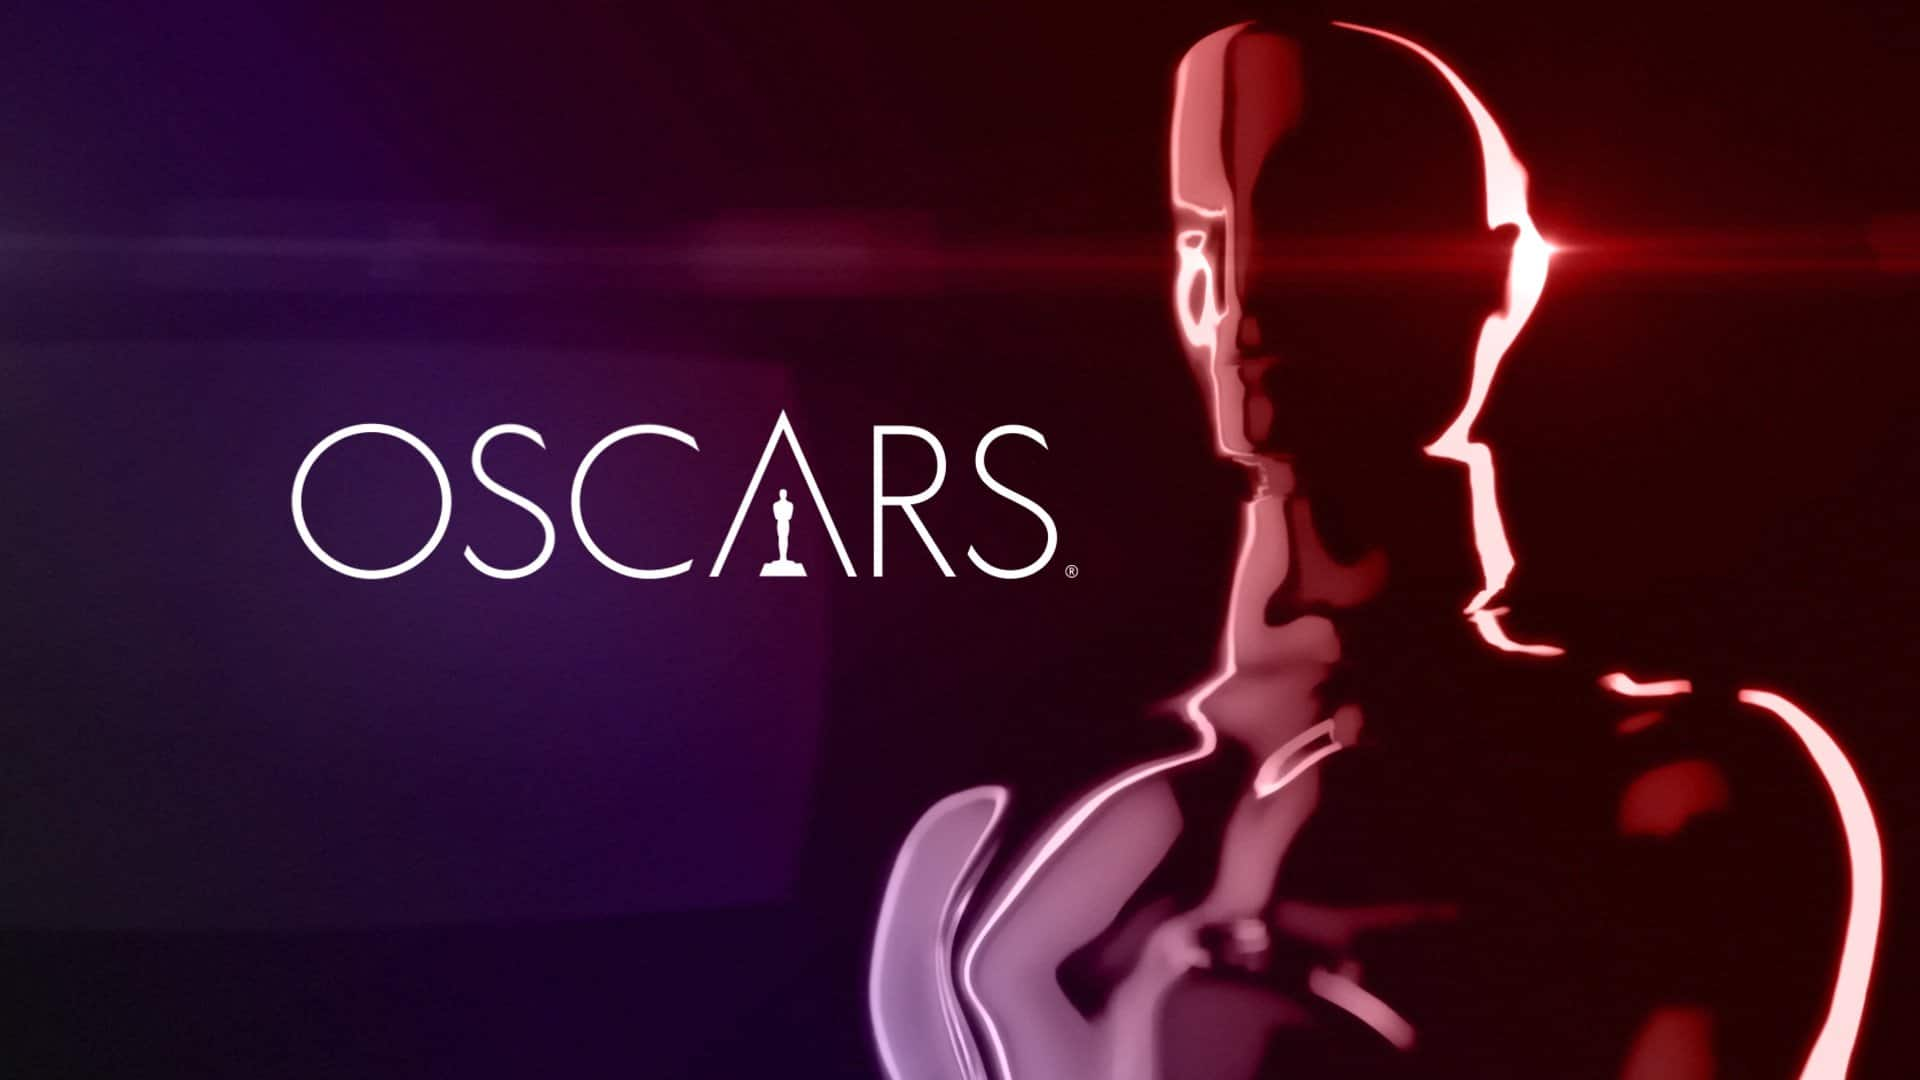 Oscars 2019: We Bet You Did Not Know These Amazing Facts About The Movies In The Best Picture Nominations